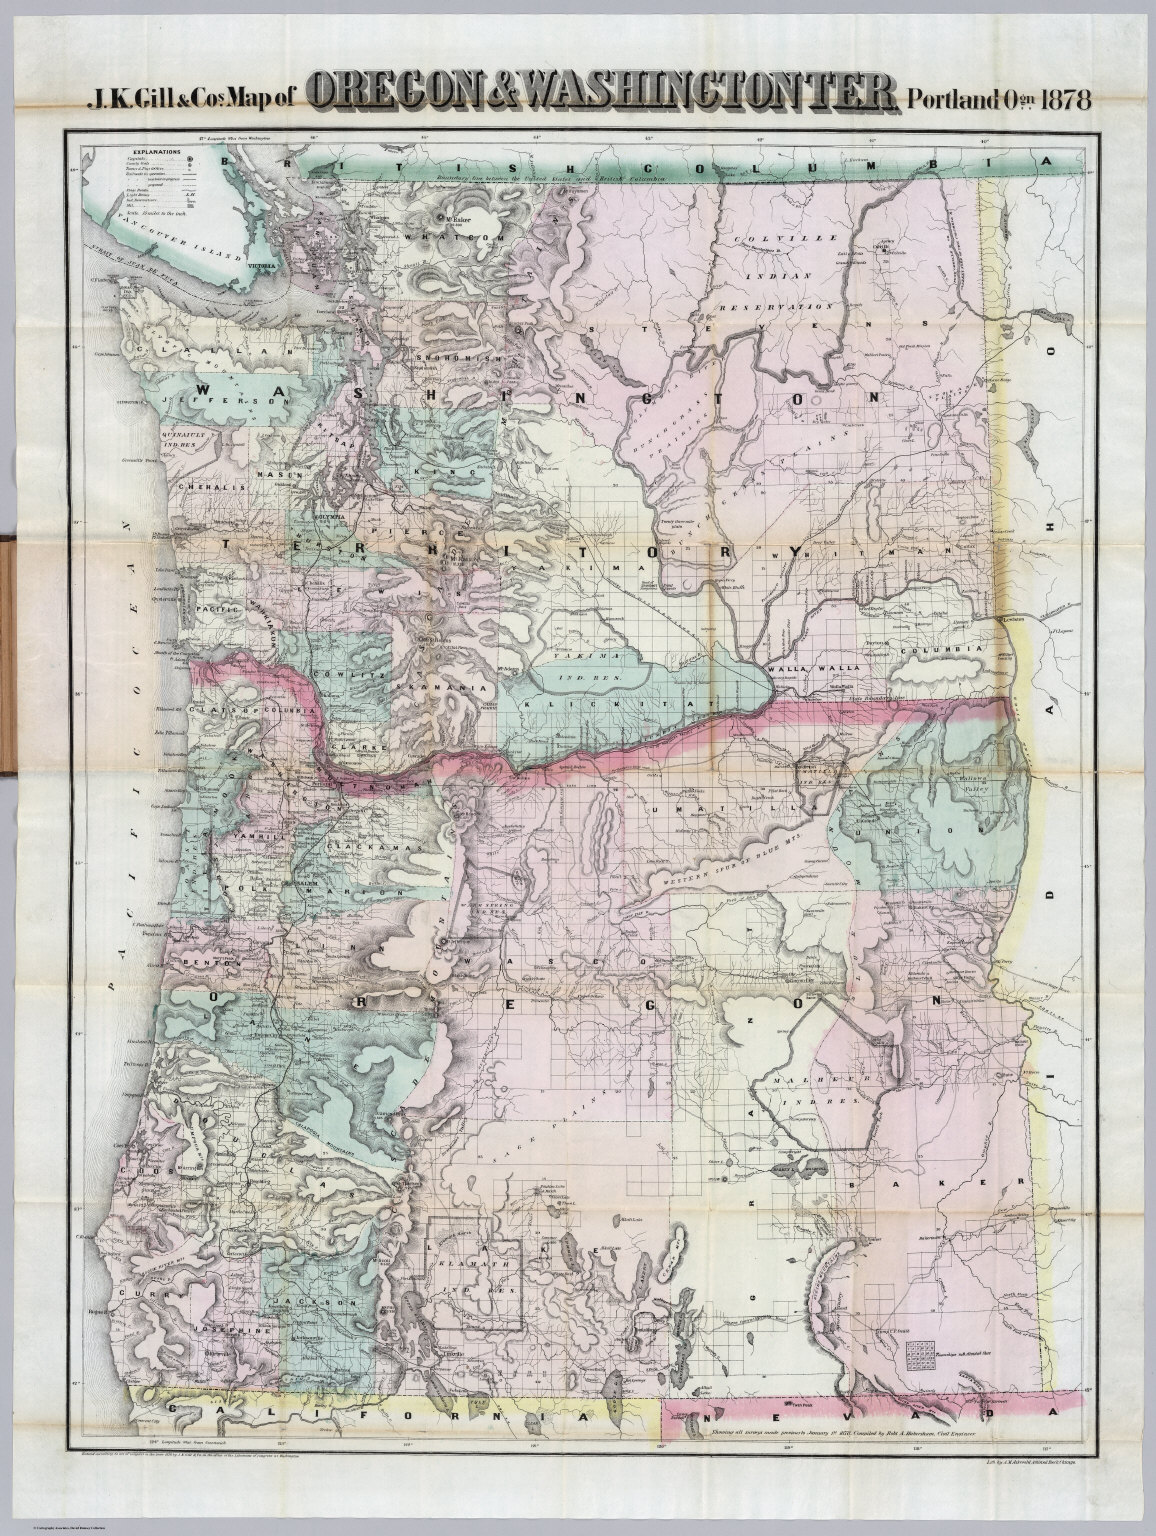 Oregon And Washington David Rumsey Historical Map Collection - Map of oregon and washington